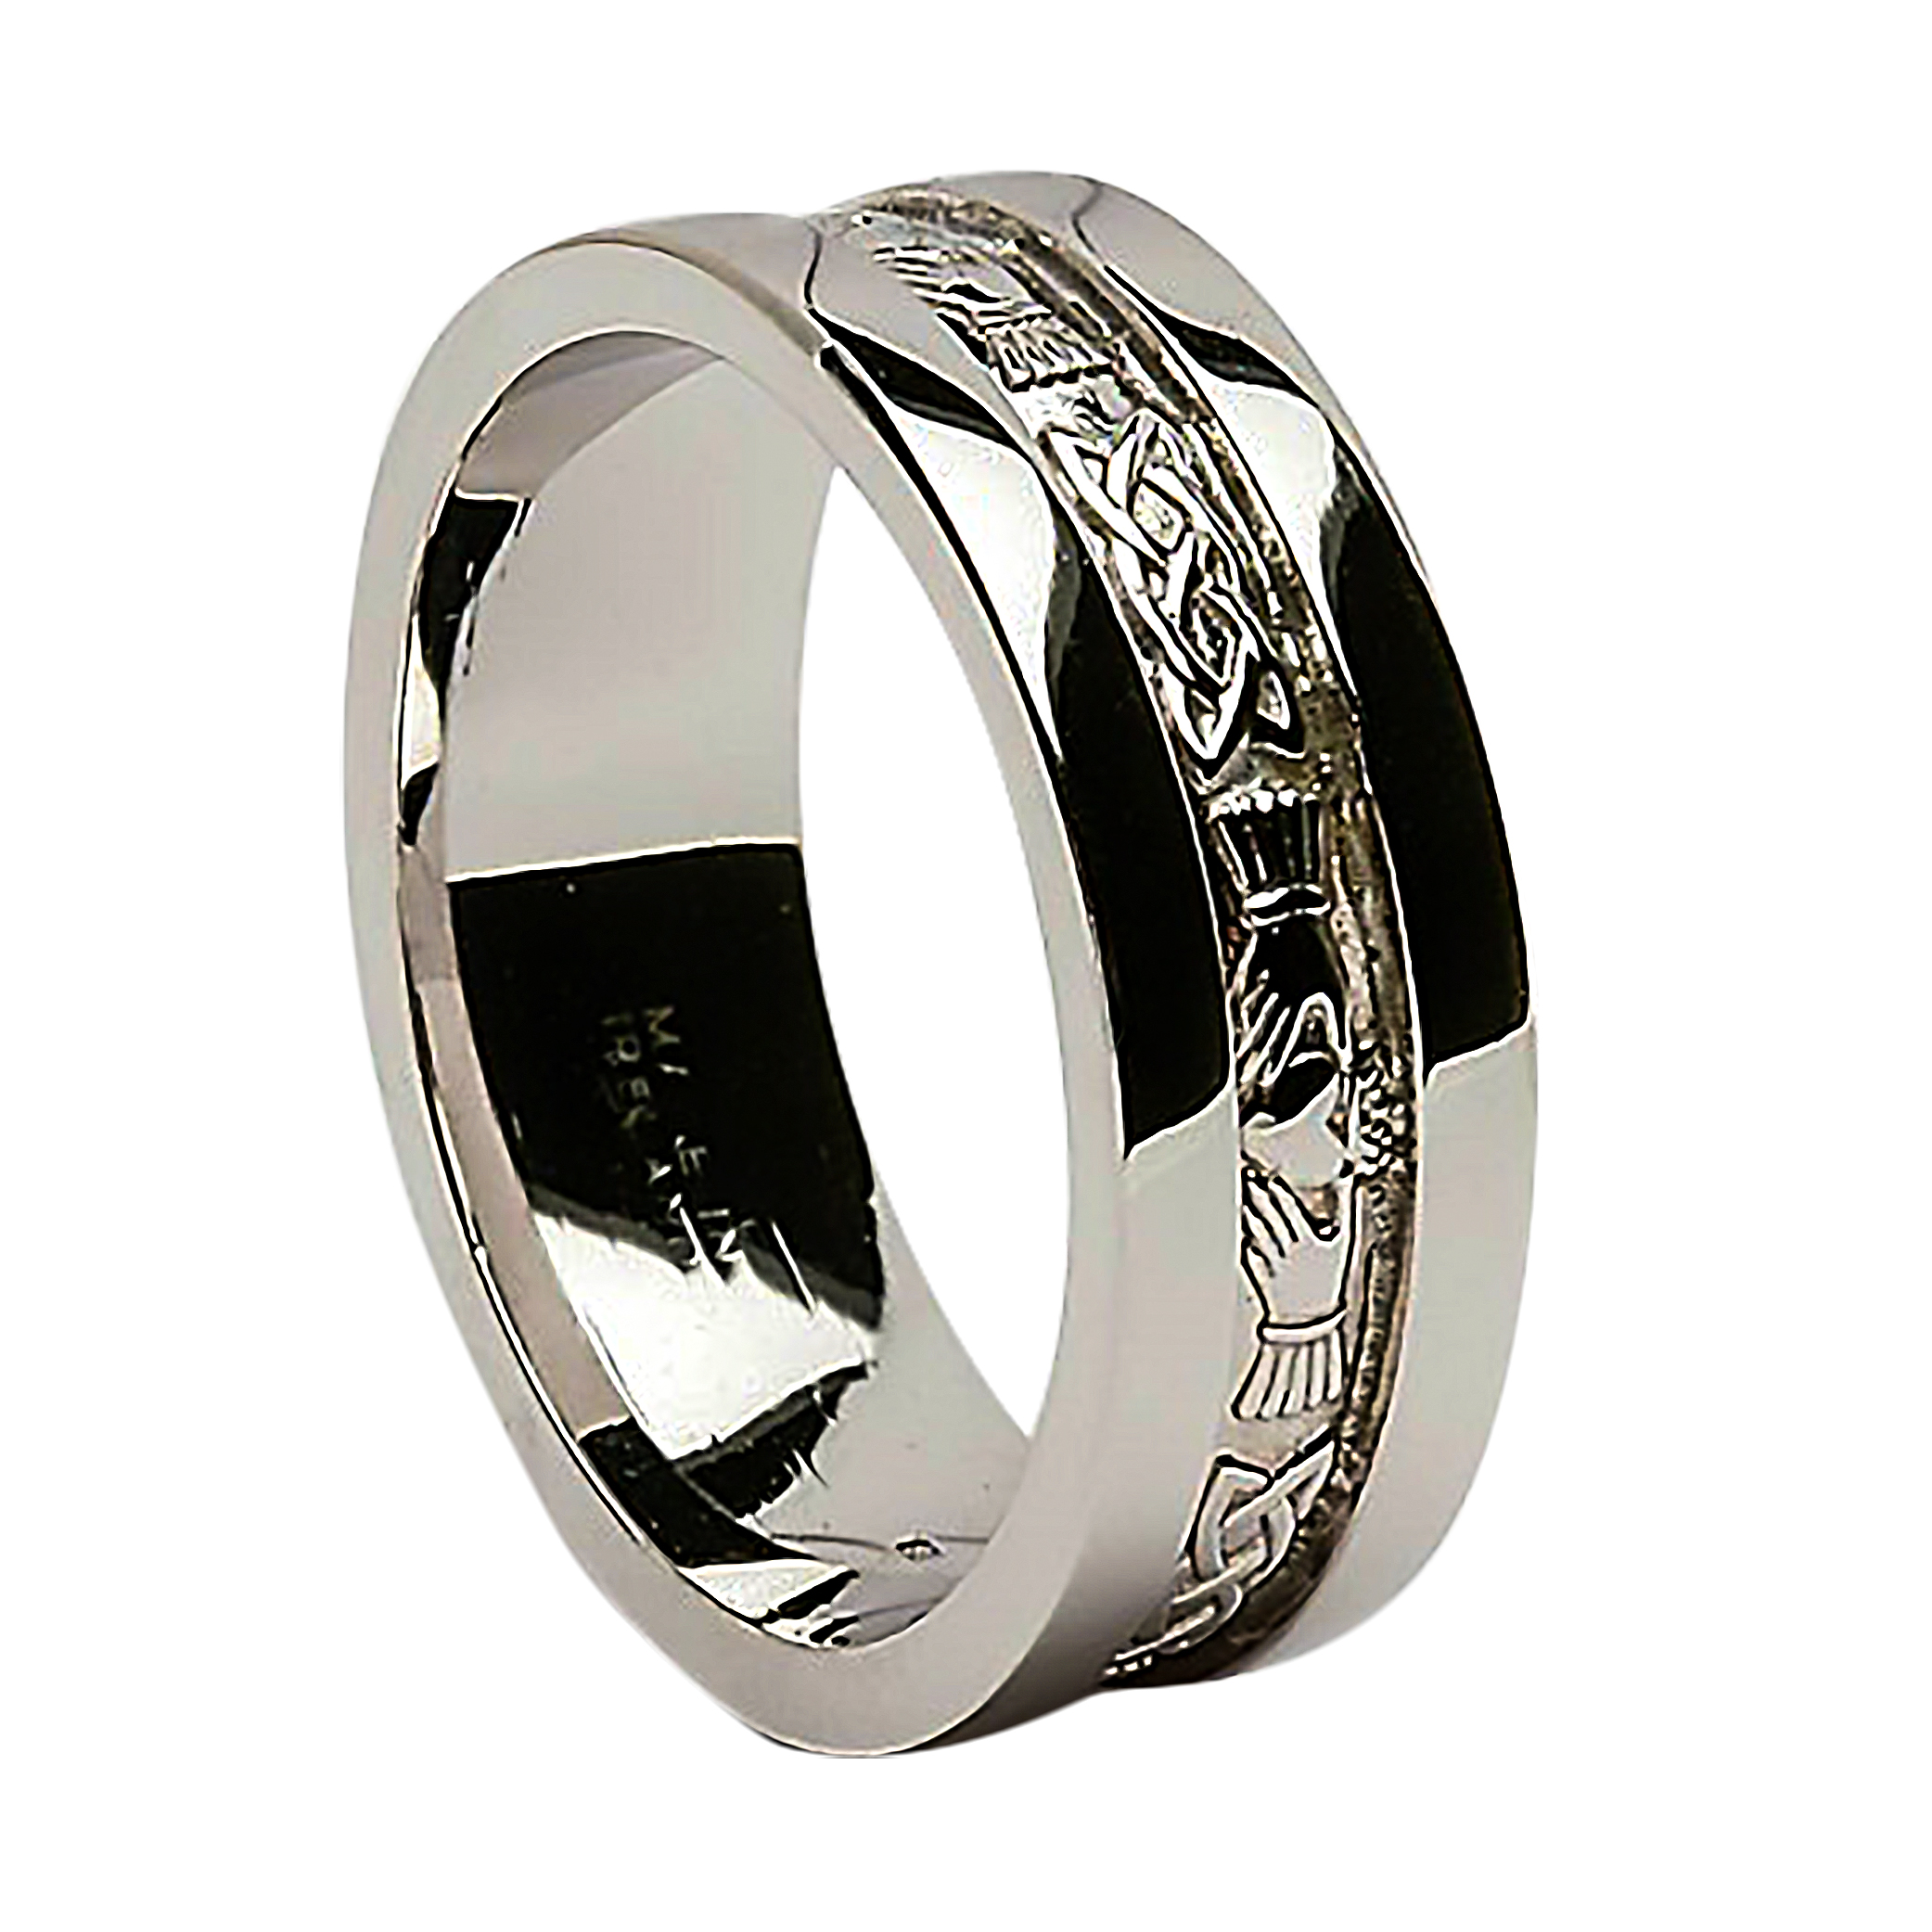 photos rings unique her gaelic graphics of cheap for inscriptions rikof beautiful com diamond awesome lovely sets ideas wedding ring the